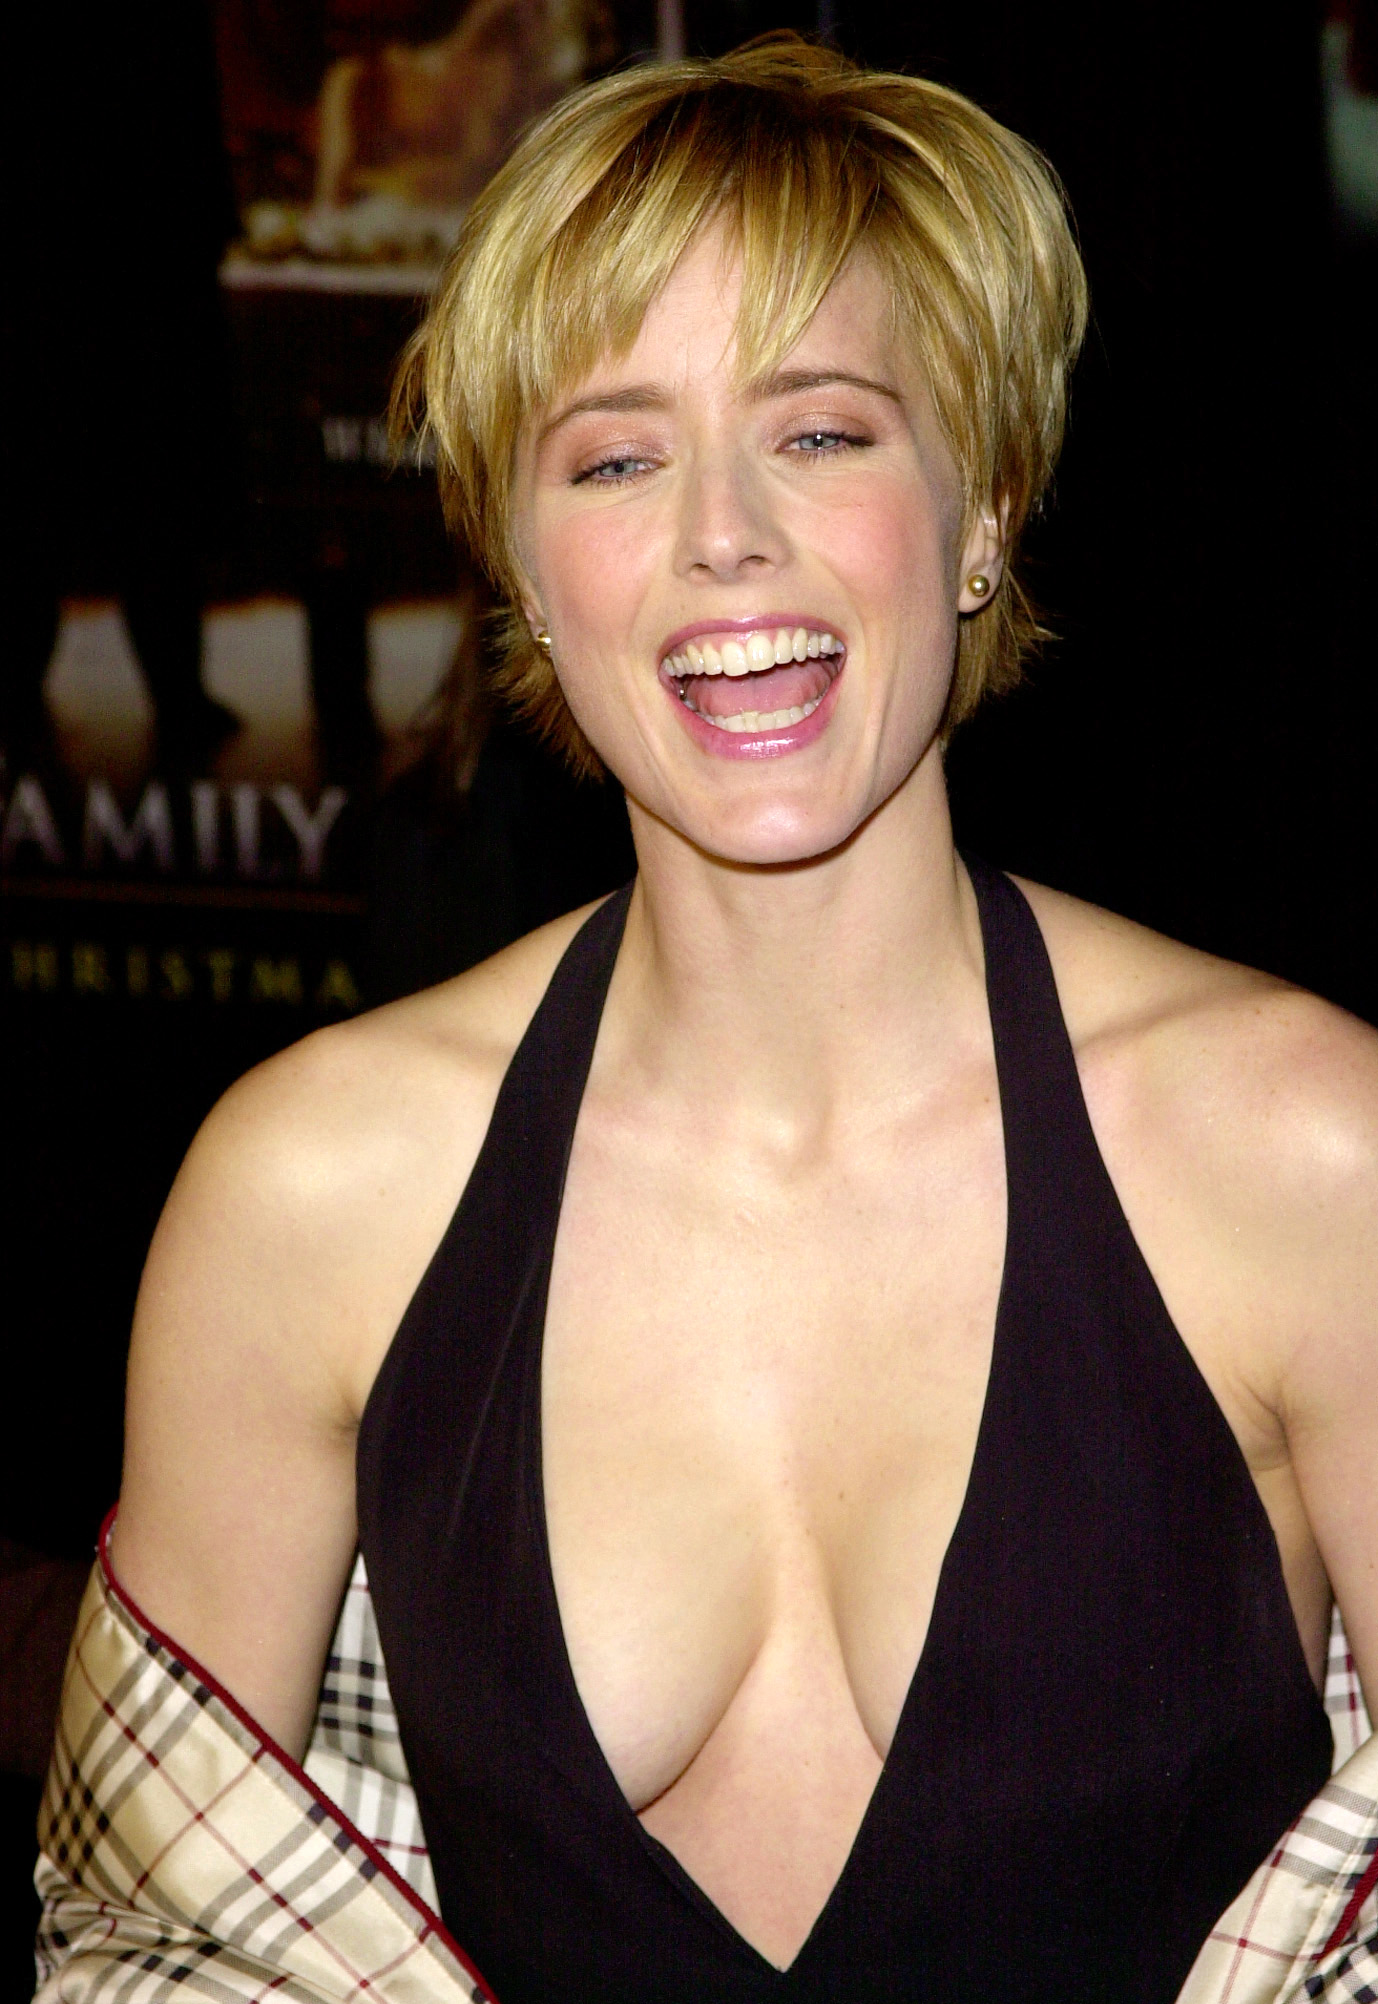 Photos Tea Leoni nude (49 photos), Sexy, Hot, Instagram, butt 2019